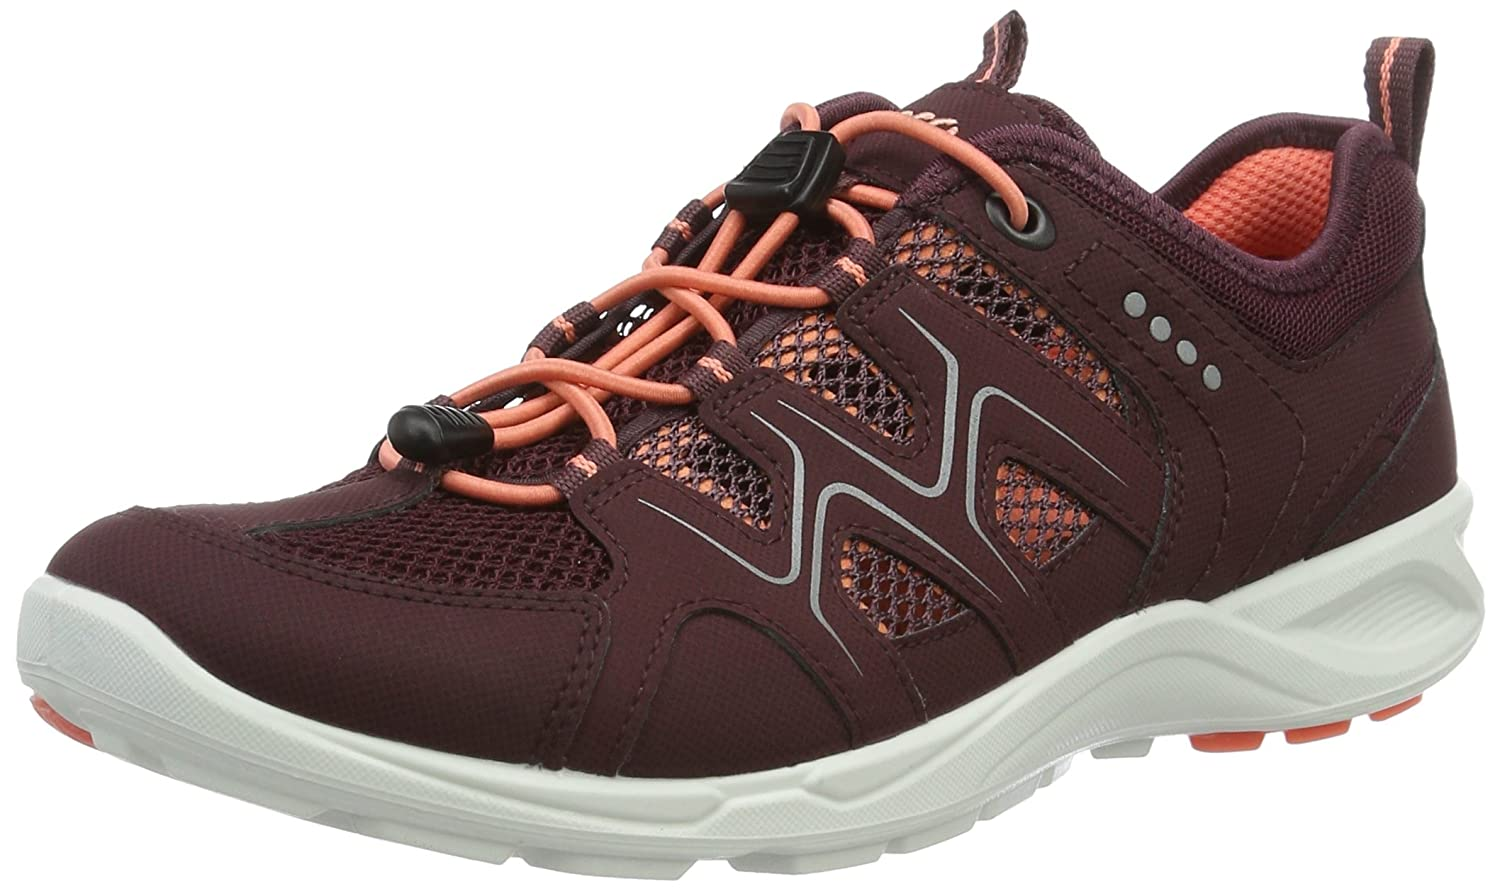 ECCO Women's Terracruise Hiking Shoe B01LKLZNGI 41 M EU (10-10.5 US)|Bordeaux